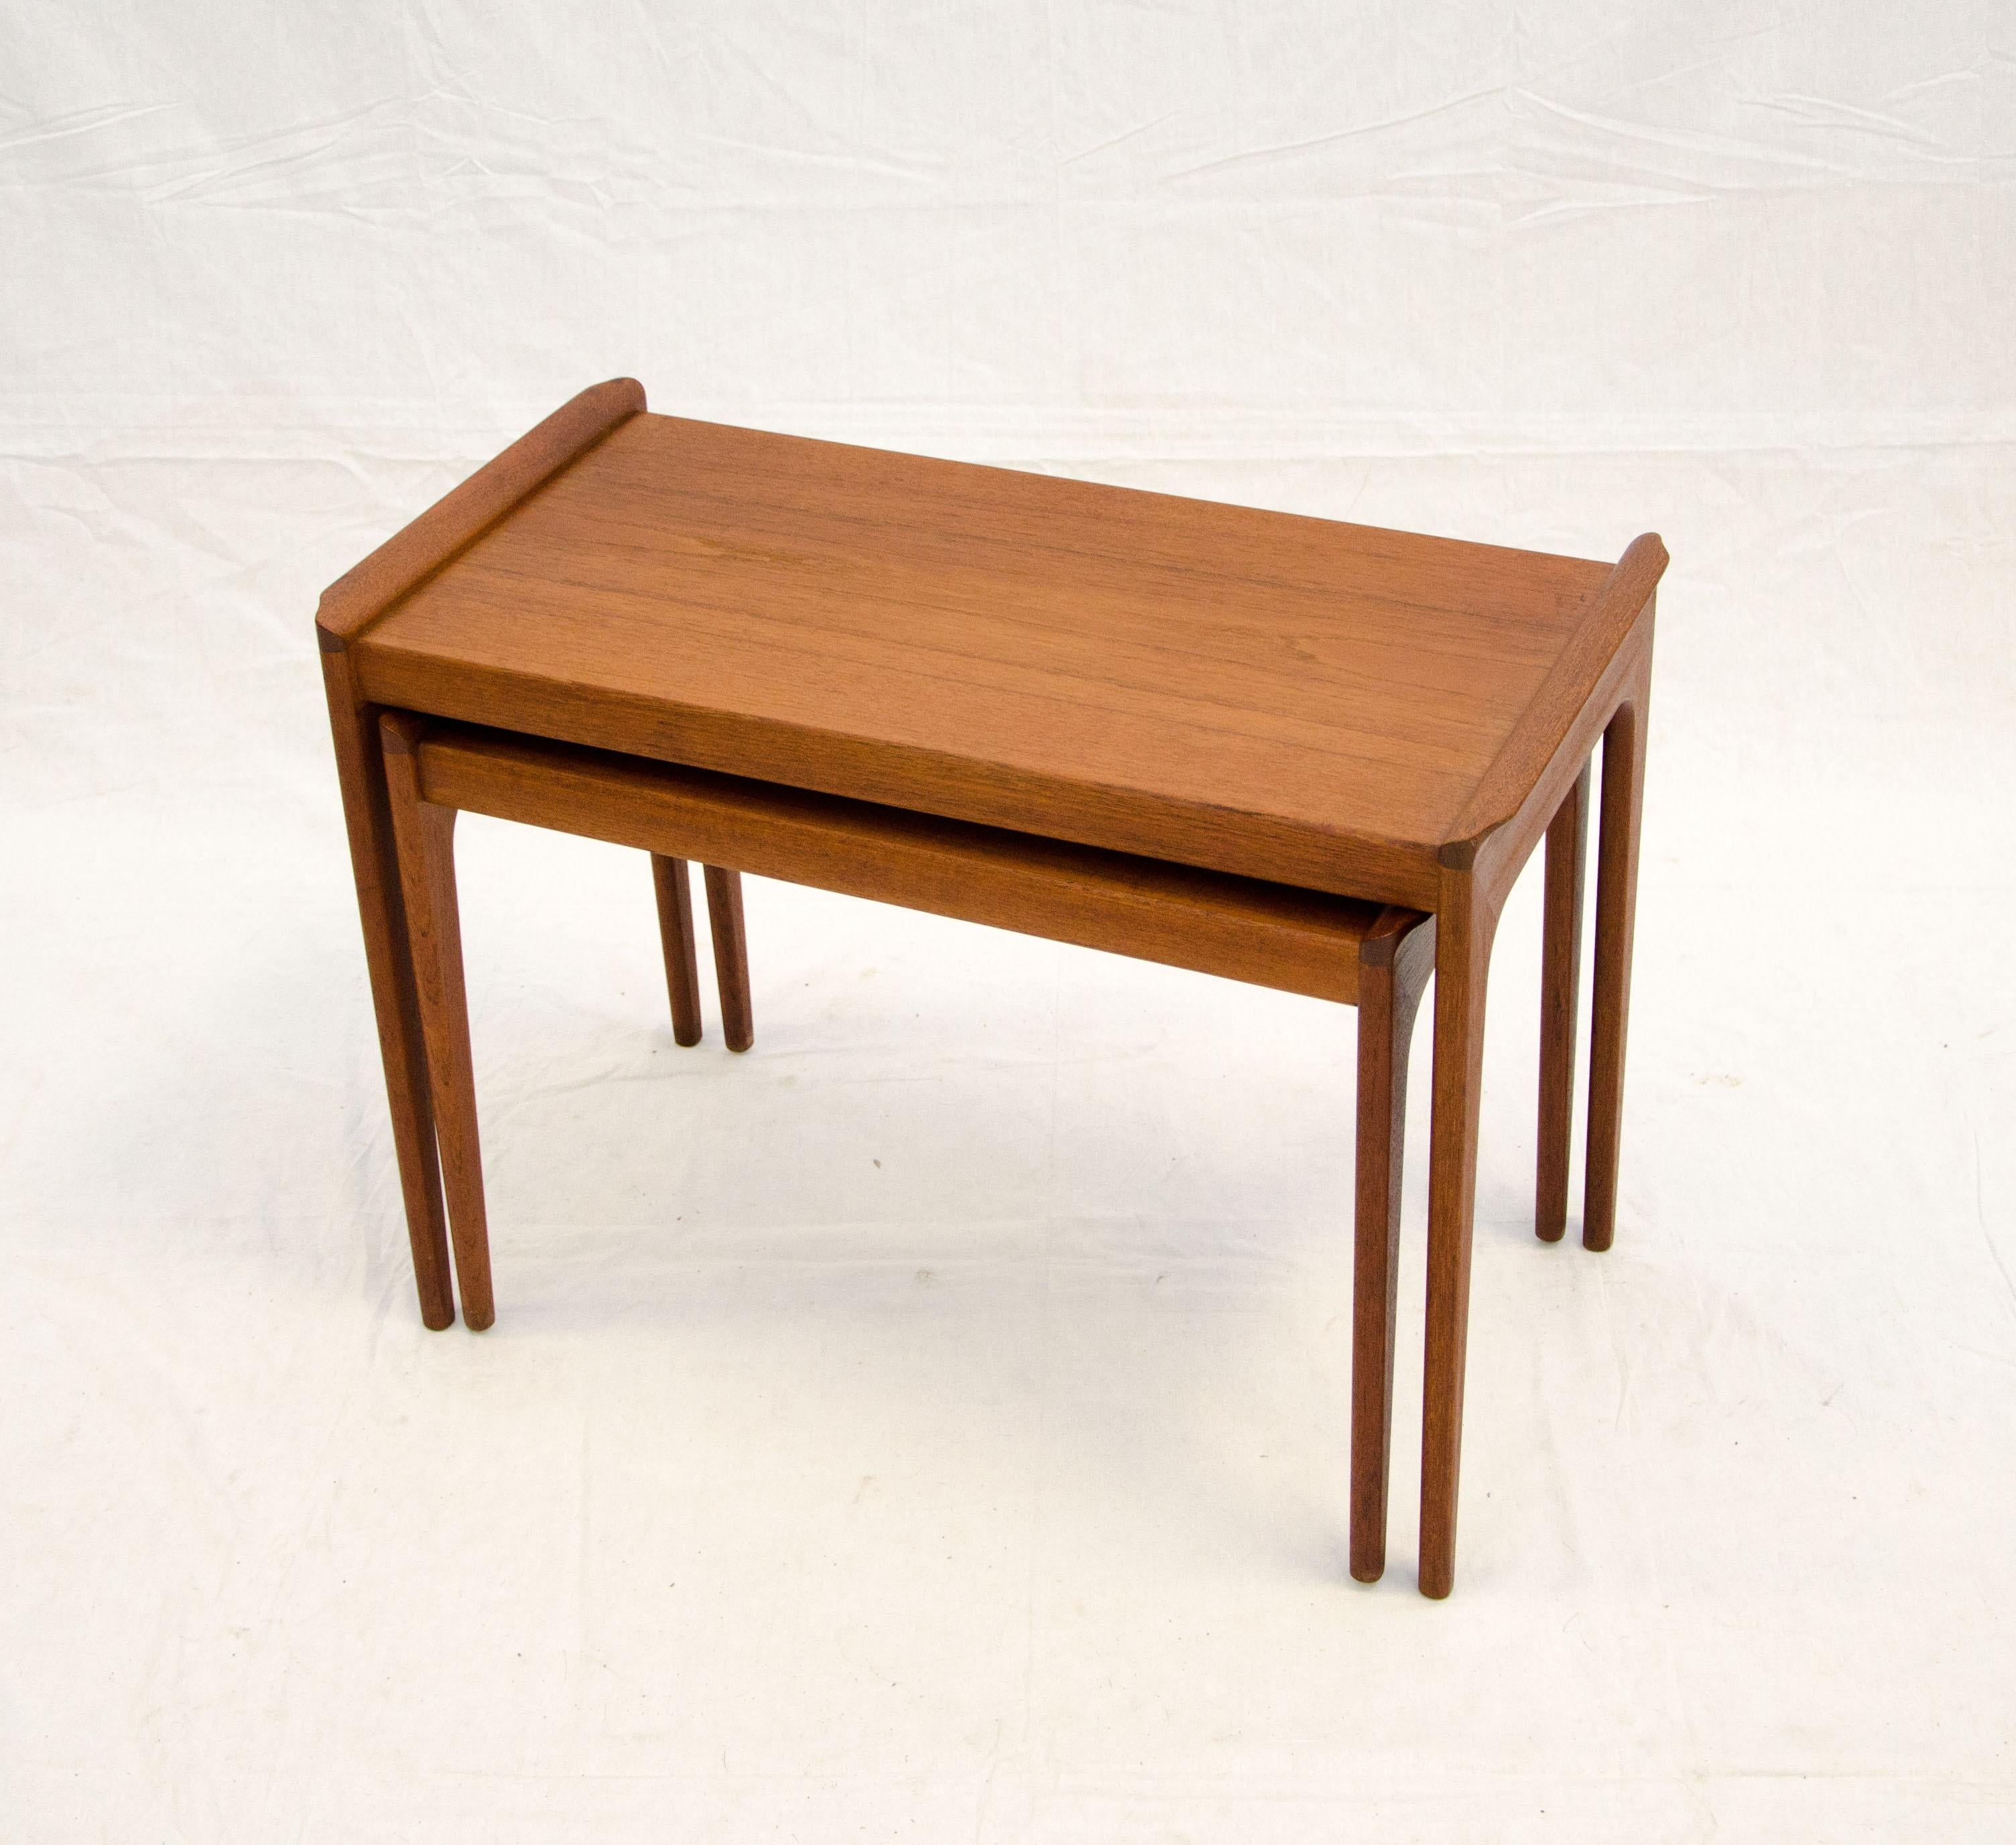 Pair Of Danish Teak Nesting Tables With Sculptural Upturned Edges On Each  End. The Lower